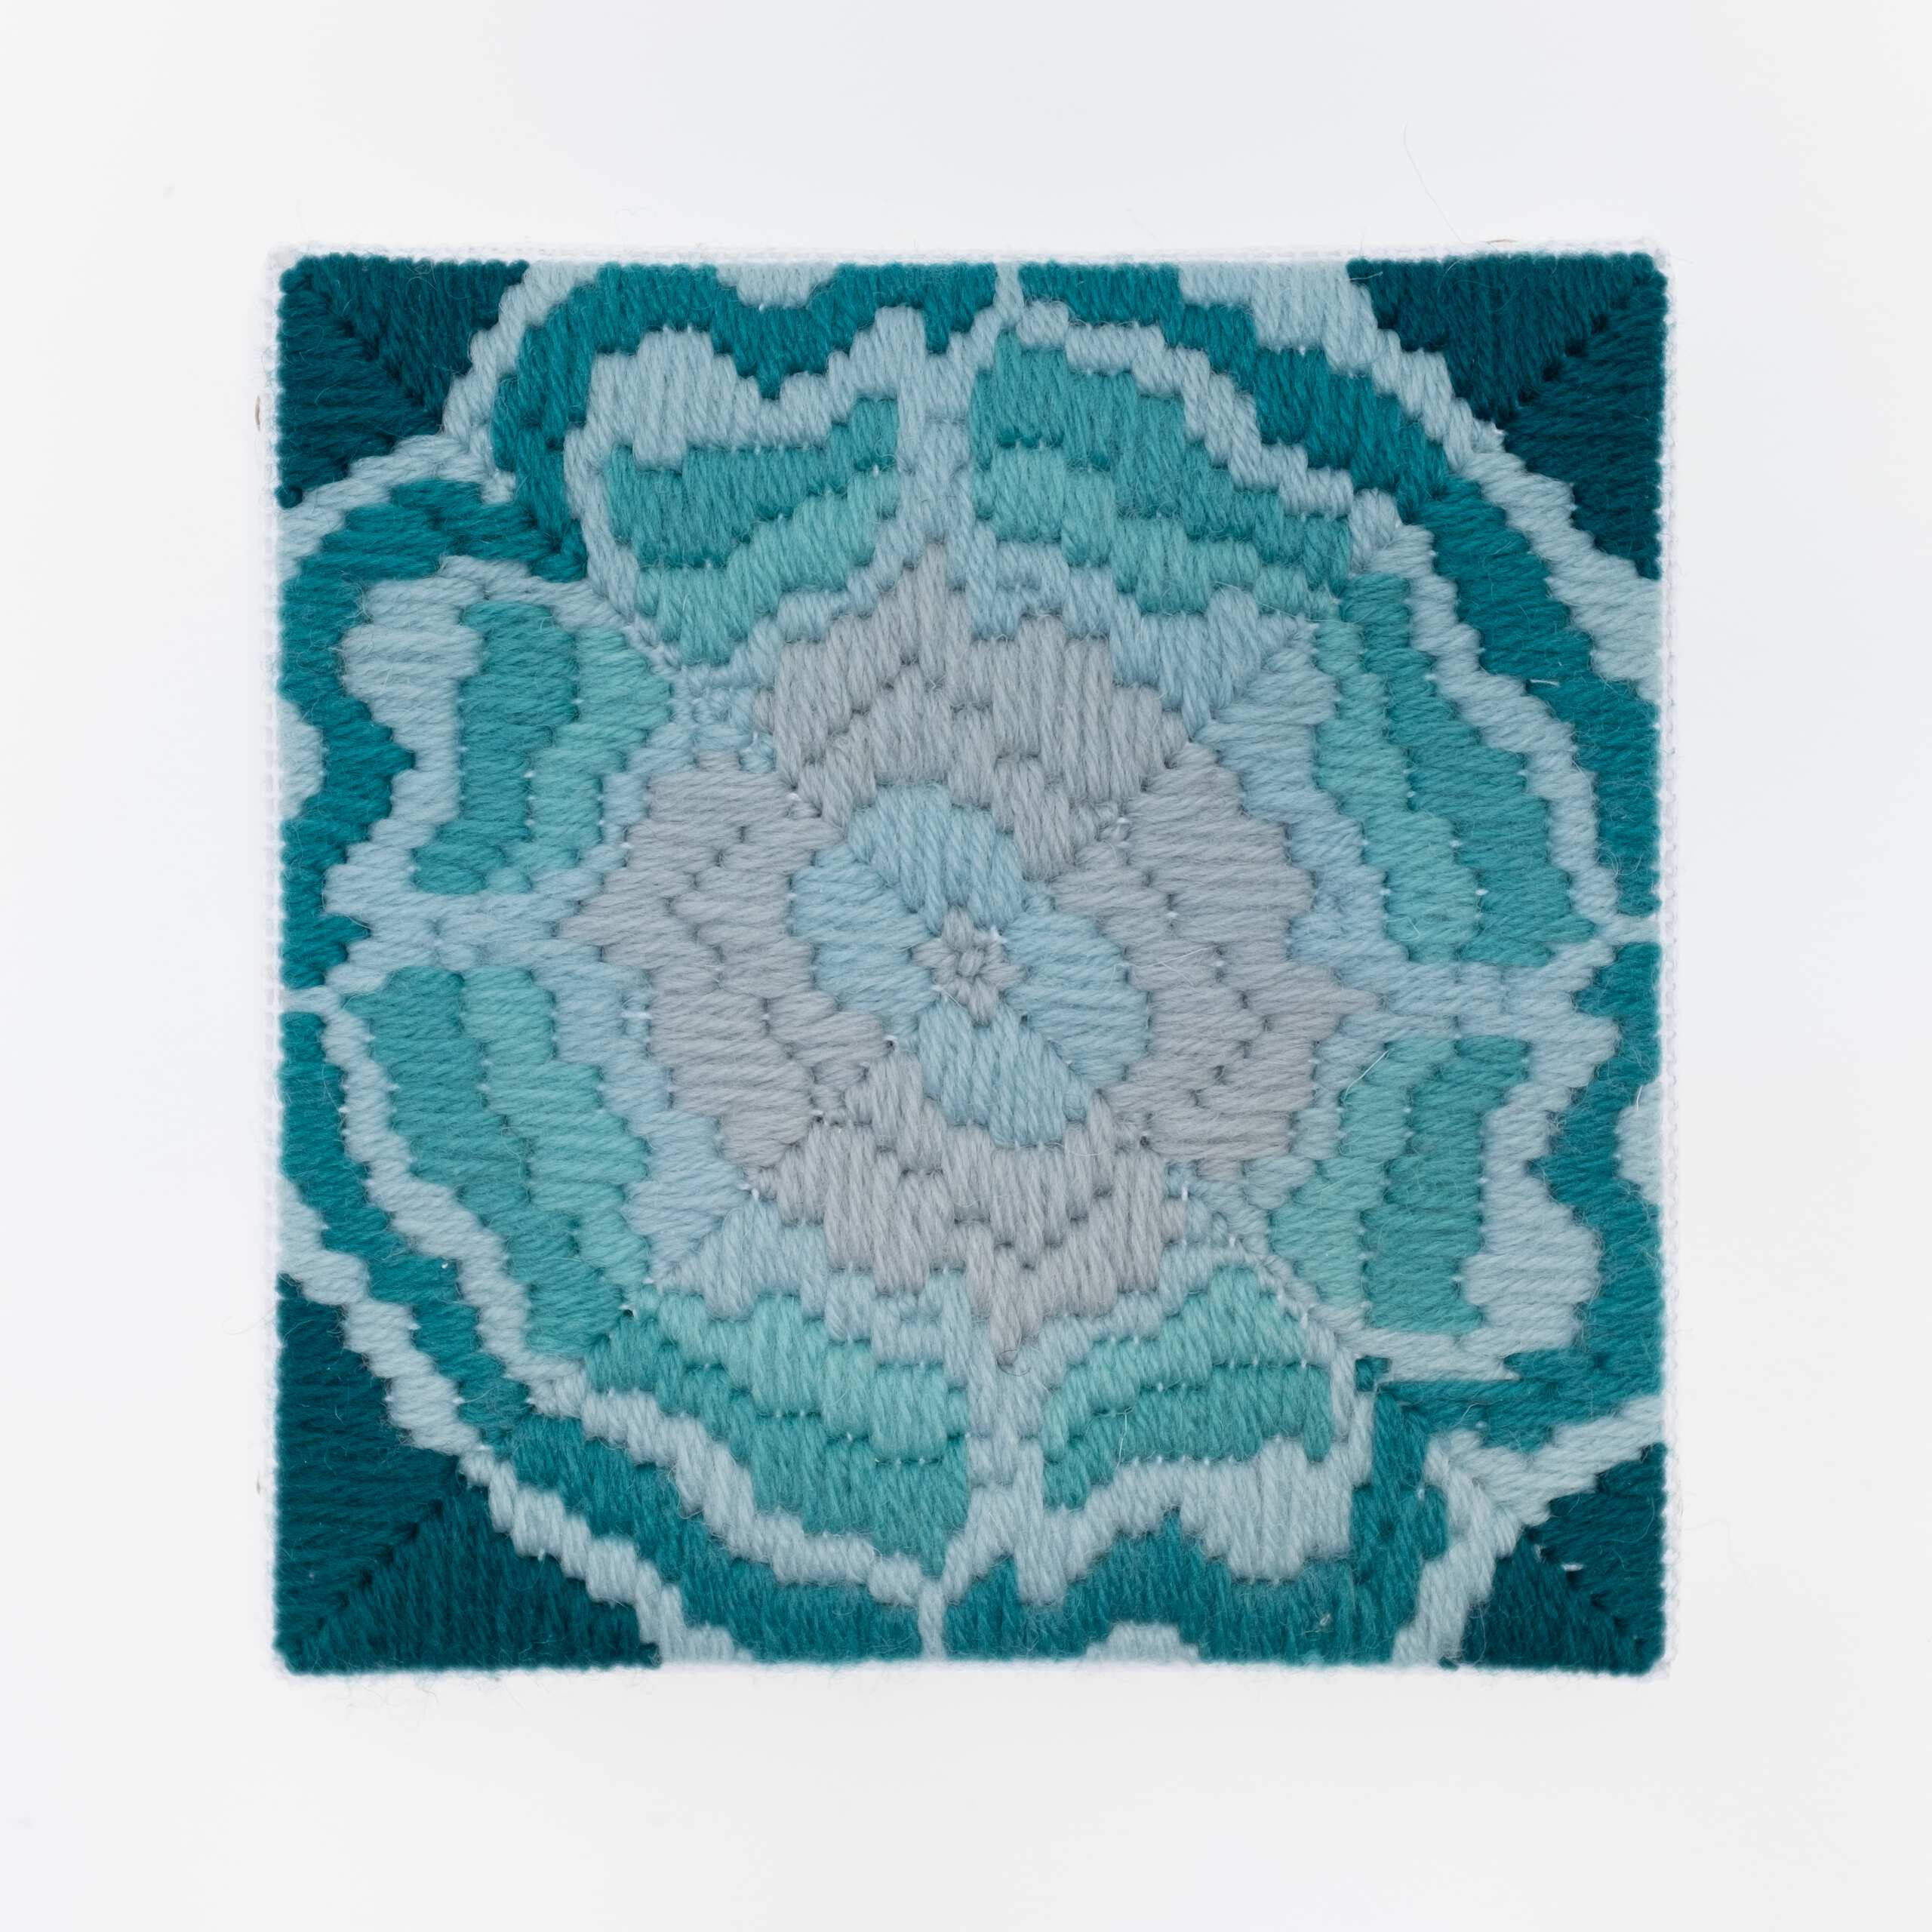 Depression Era [cast glass, teal], Hand-embroidered wool on canvas over panel, 2020